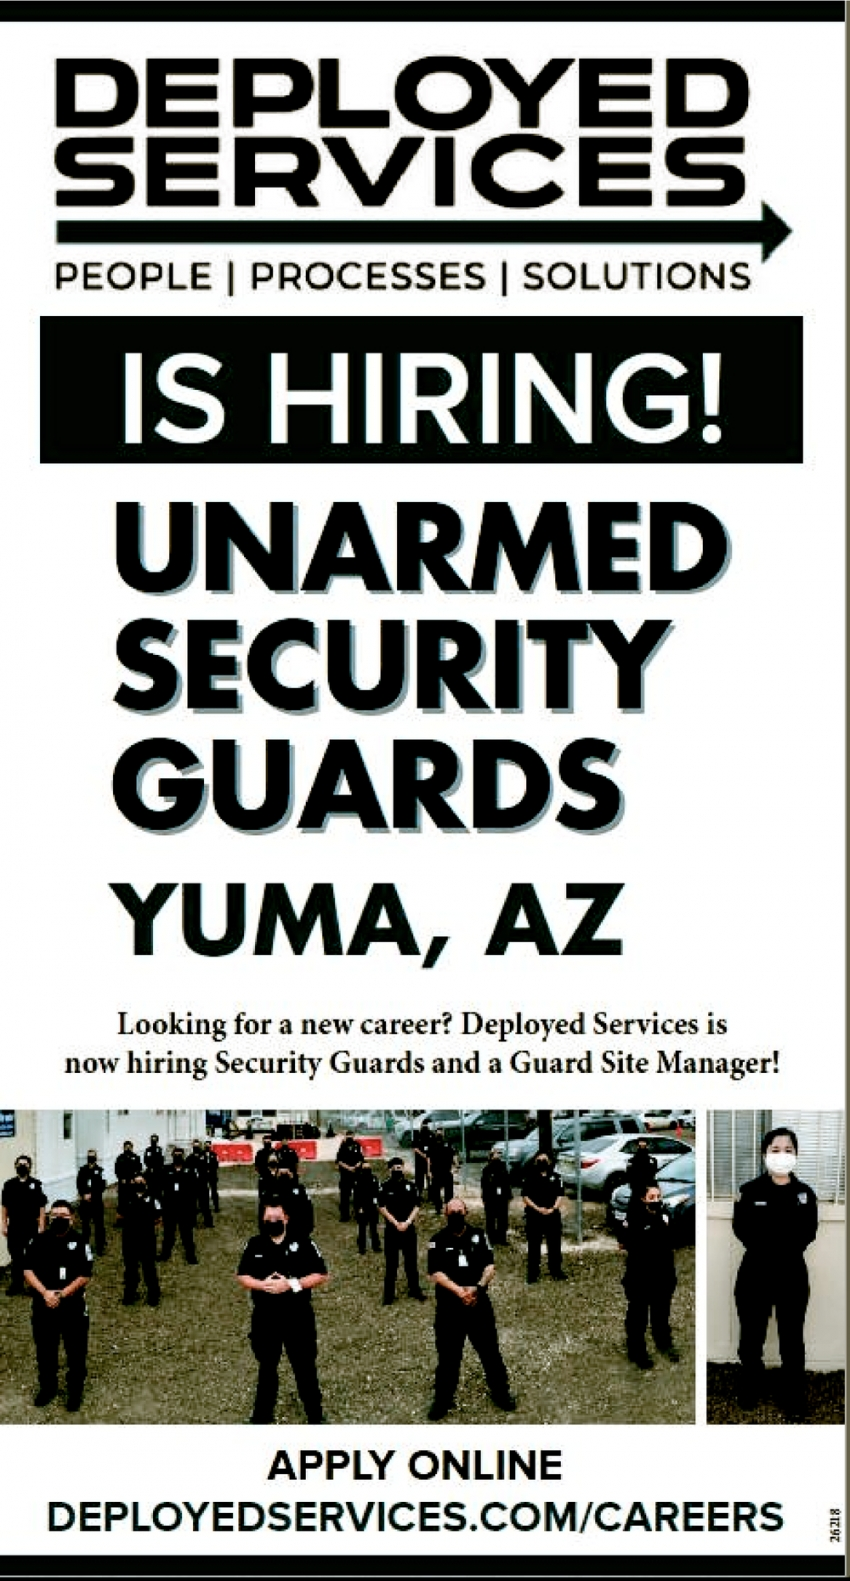 Unarmed Security Guards